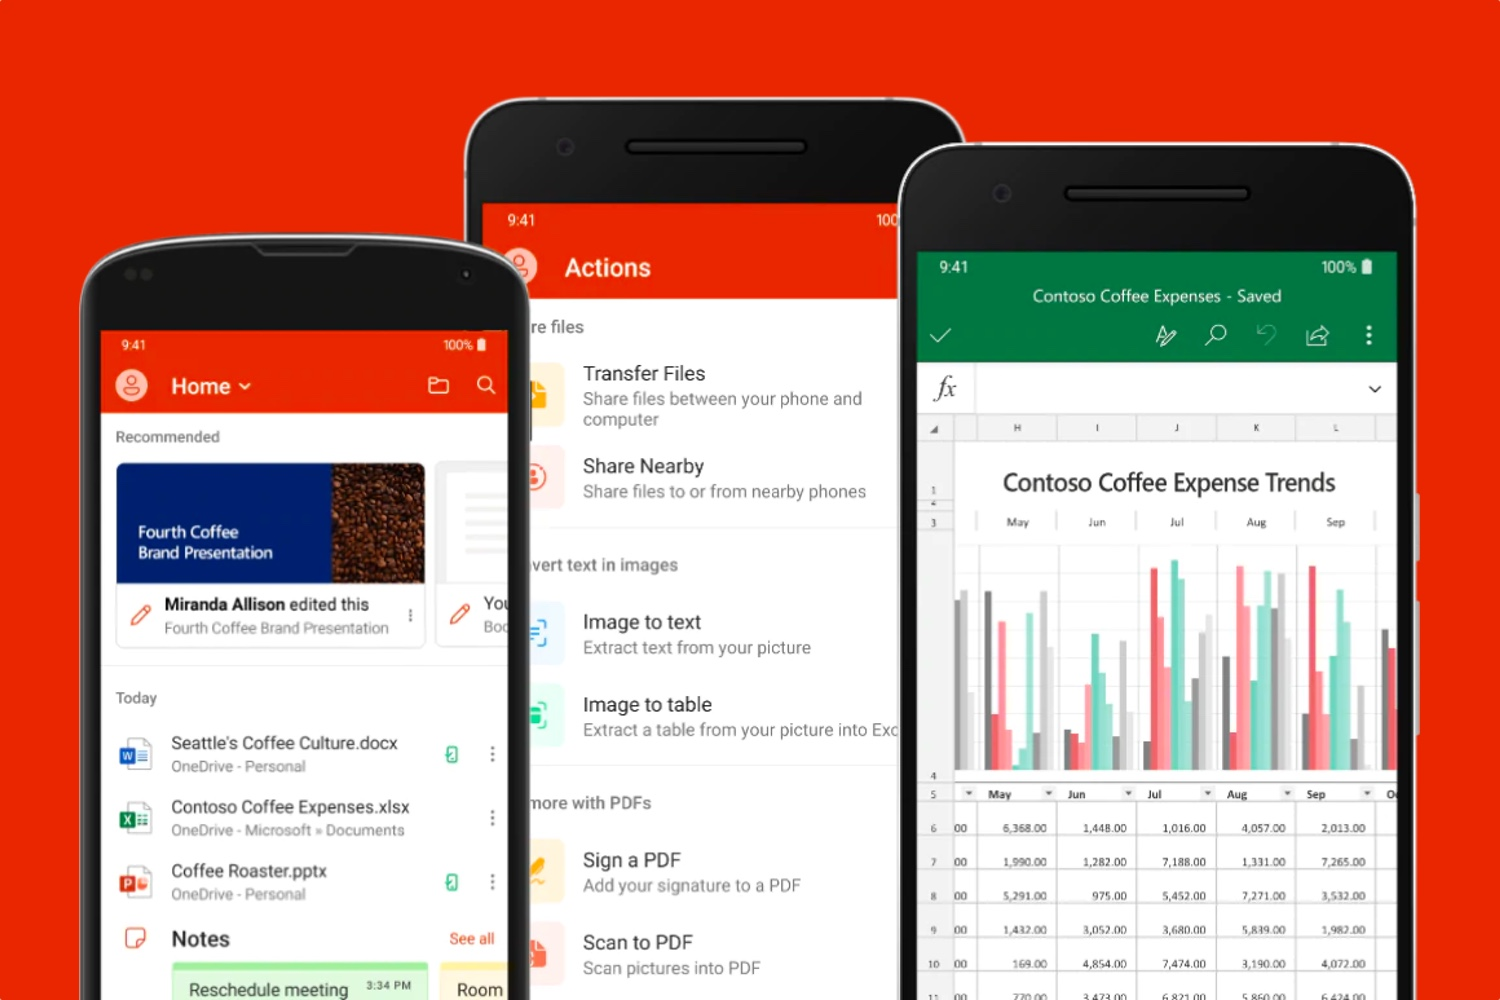 Microsoft reunifica sus apps de Office para Android